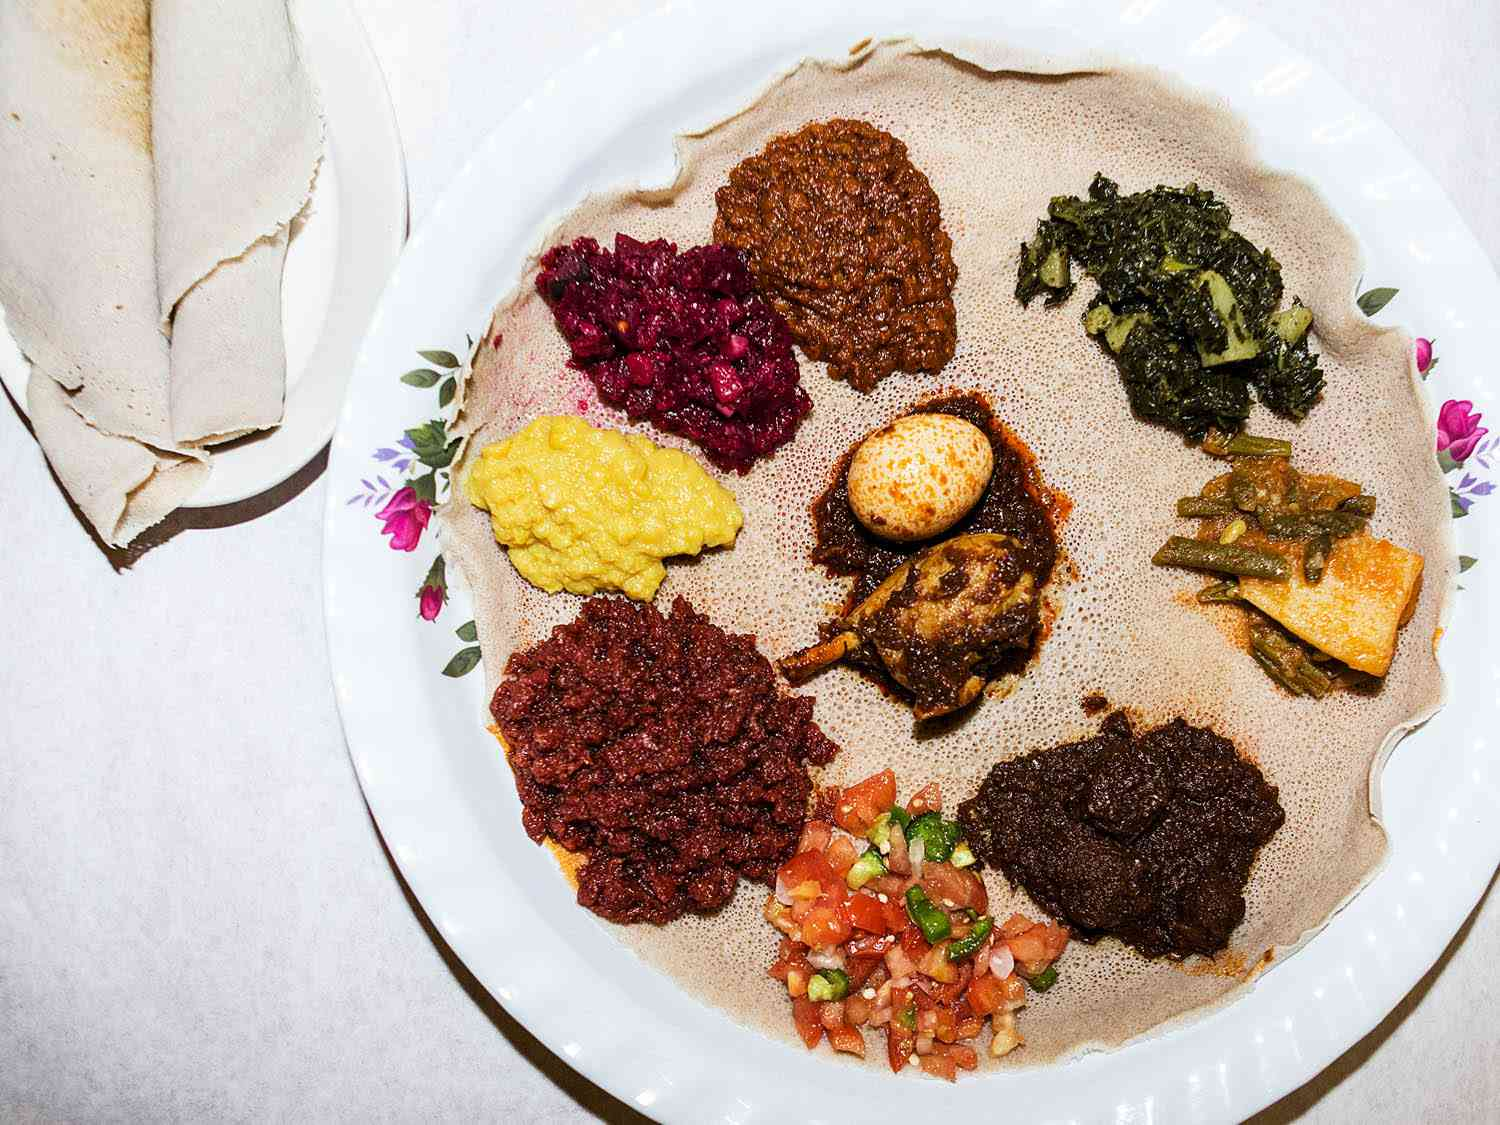 Ethiopian injera bread holding servings of vegetable dishes.